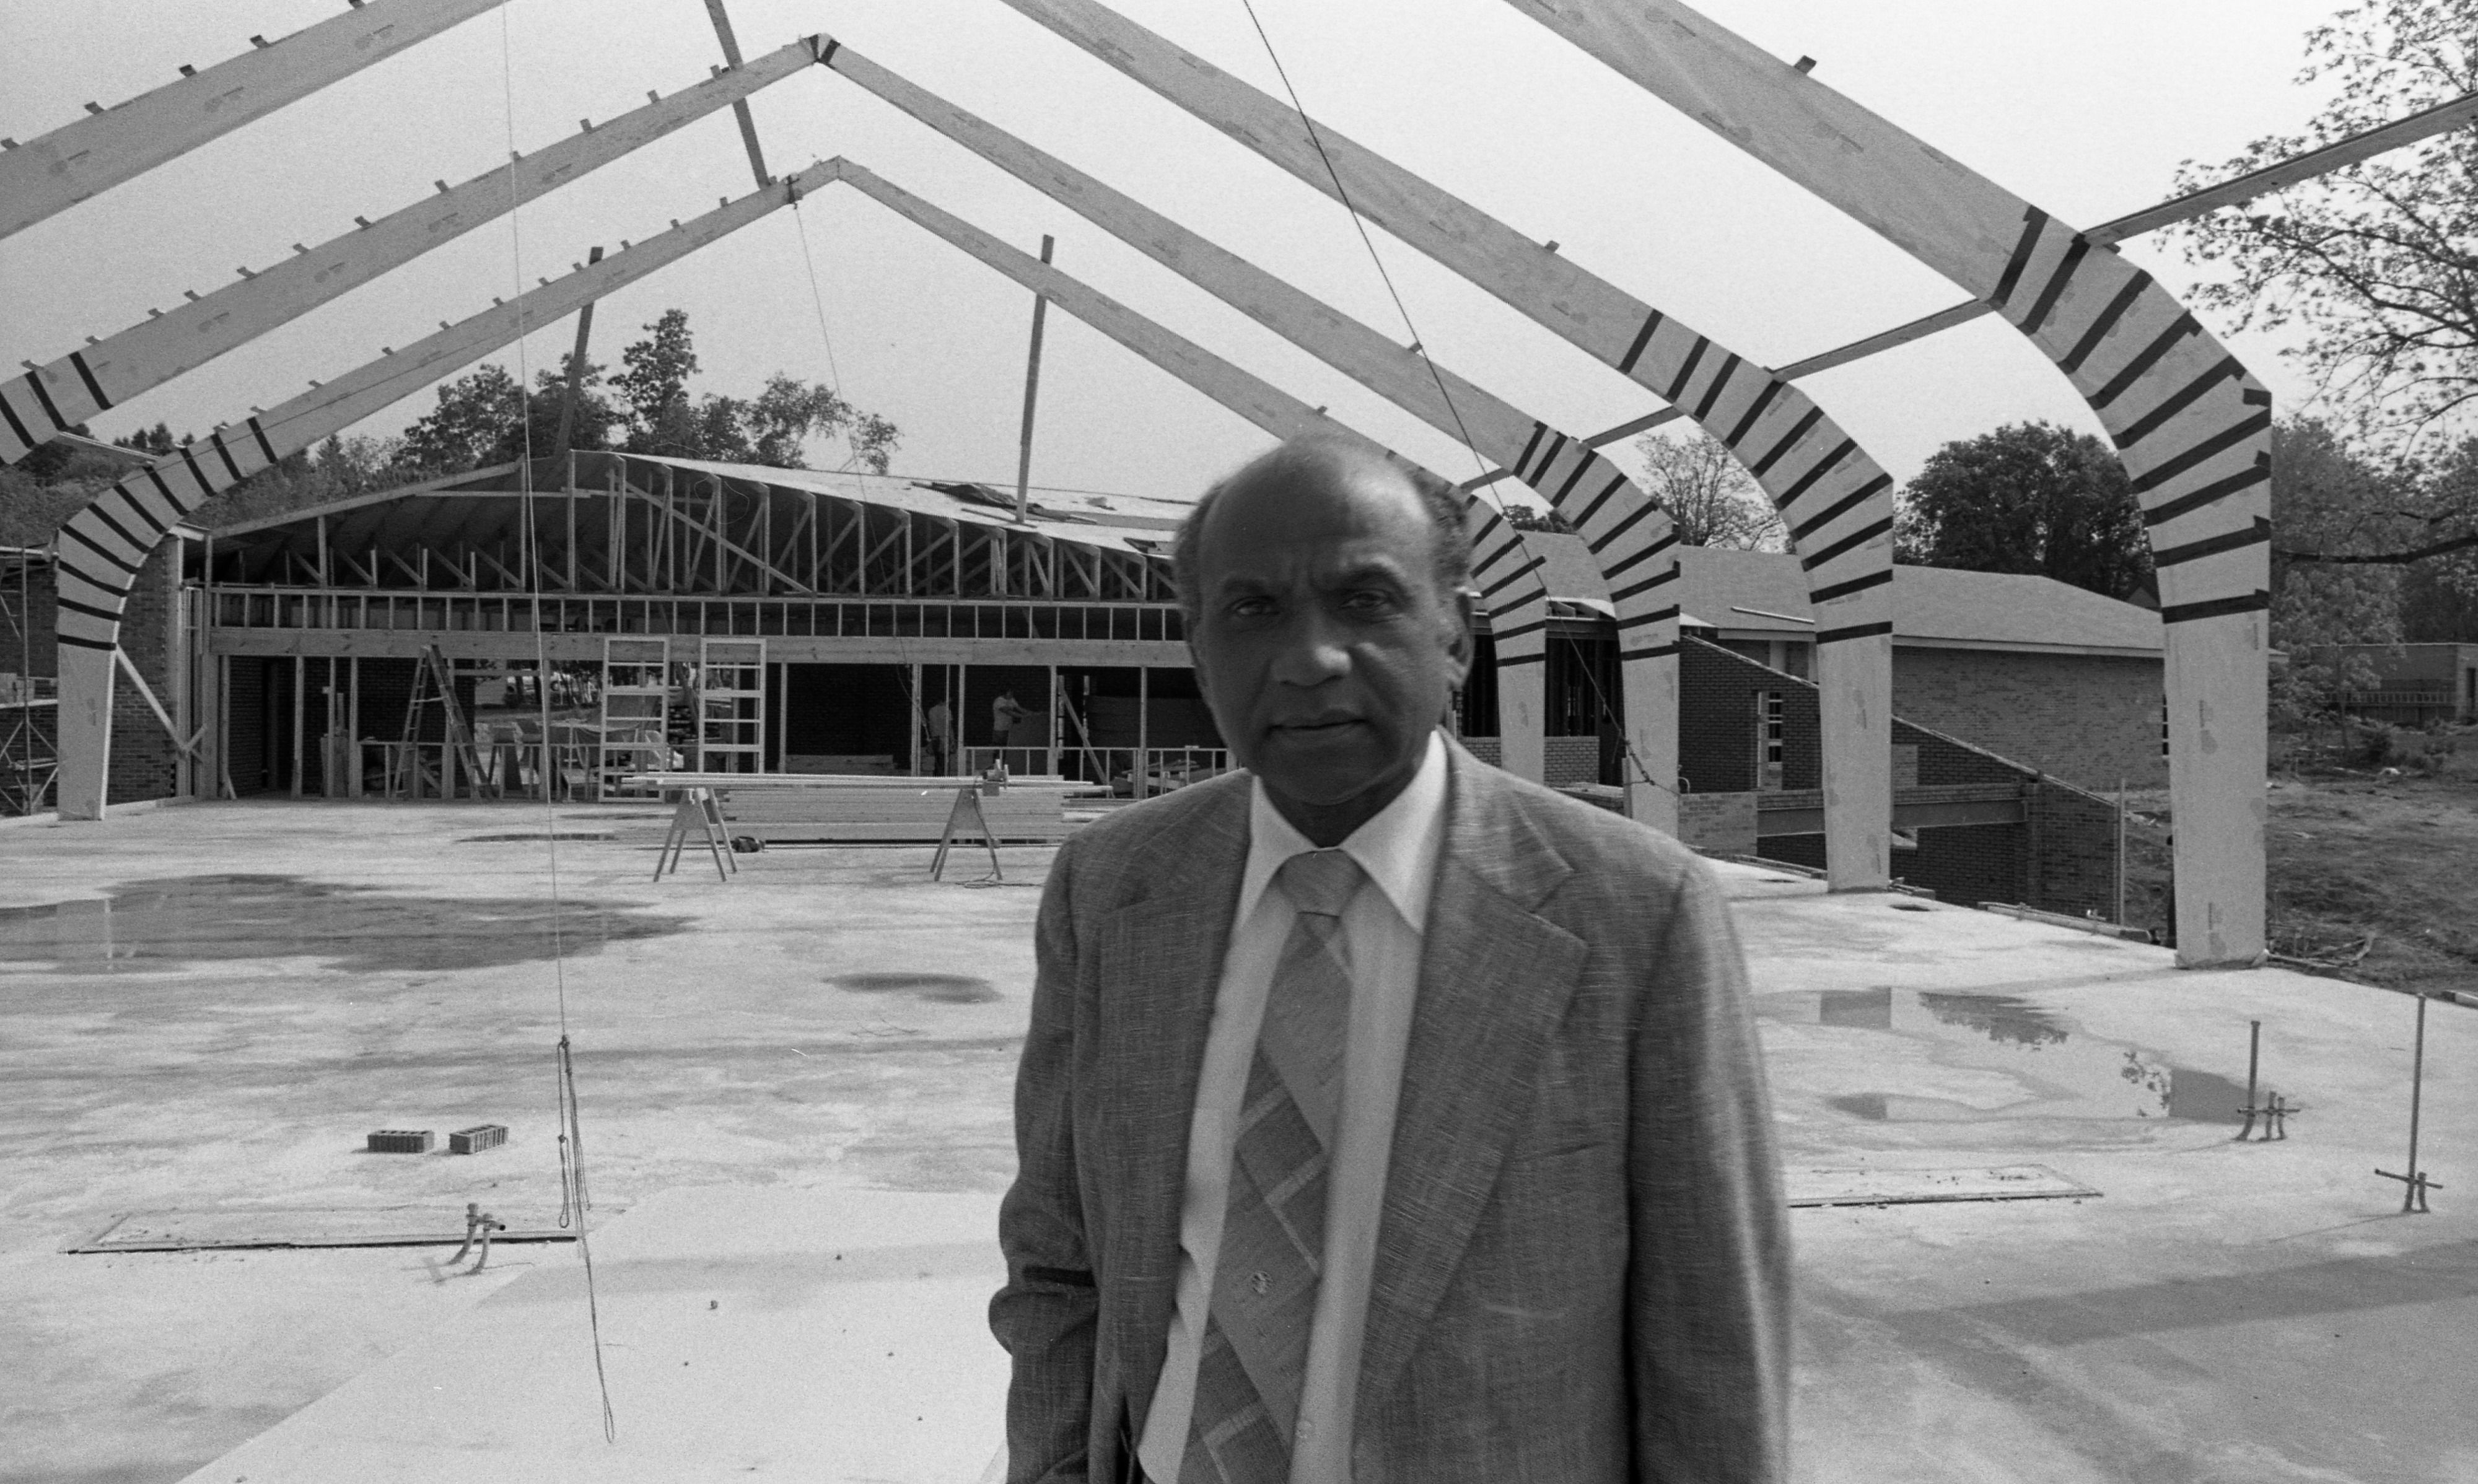 Rev. Emmett L. Green, Pastor, Second Baptist Church at Site of New Church on Red Oak Rd., May 1980 image